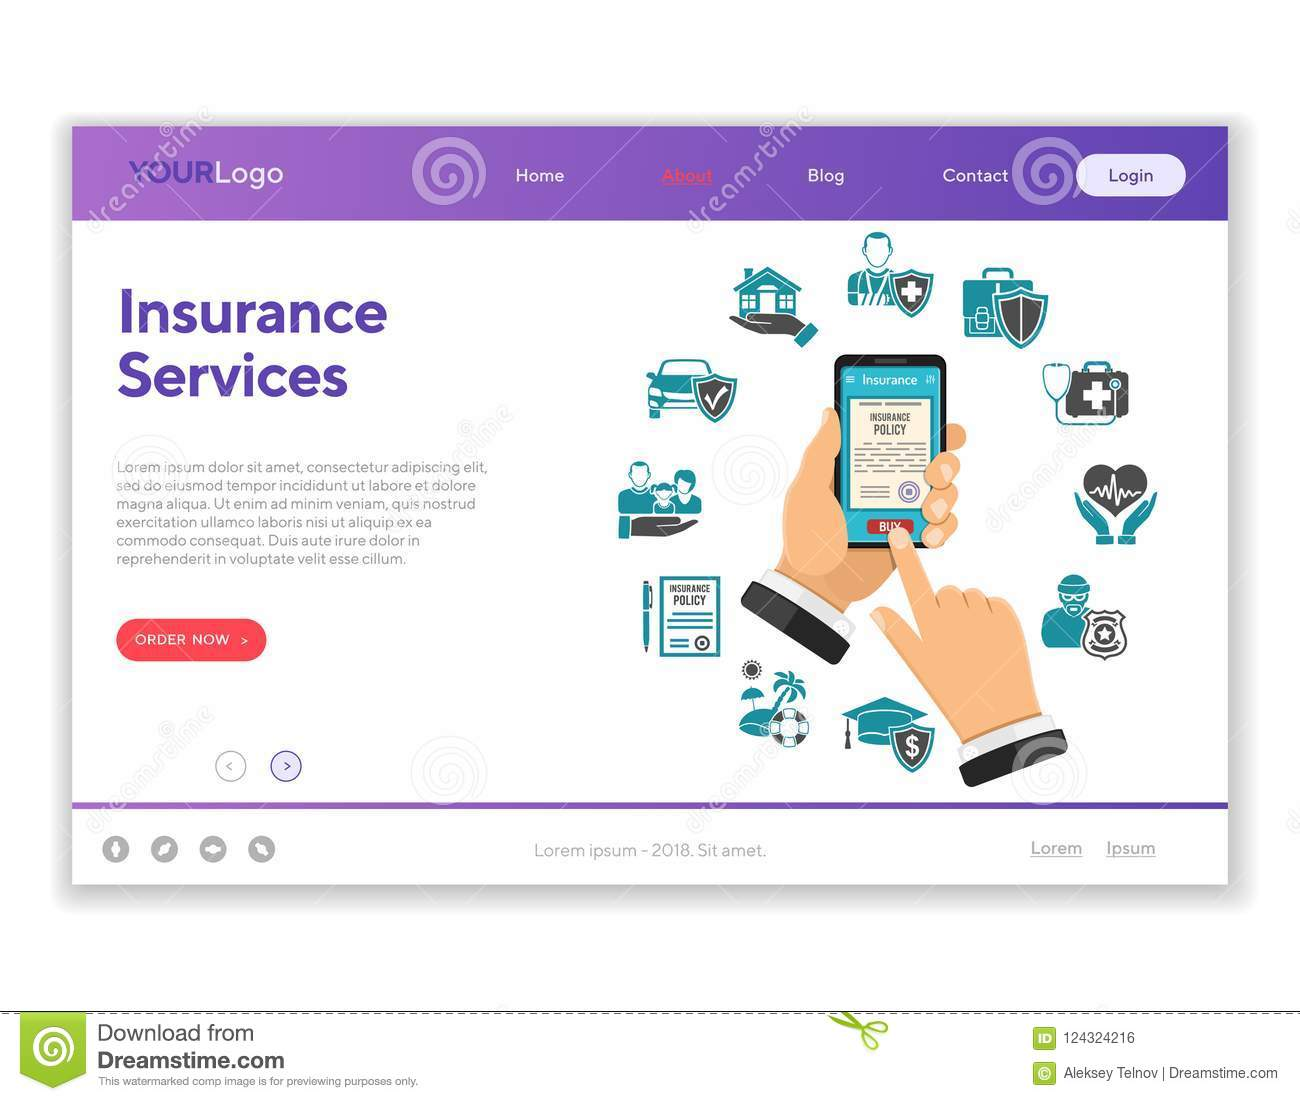 smartphone insurance contract template  Online Insurance Services Concept Stock Vector - Illustration of ...